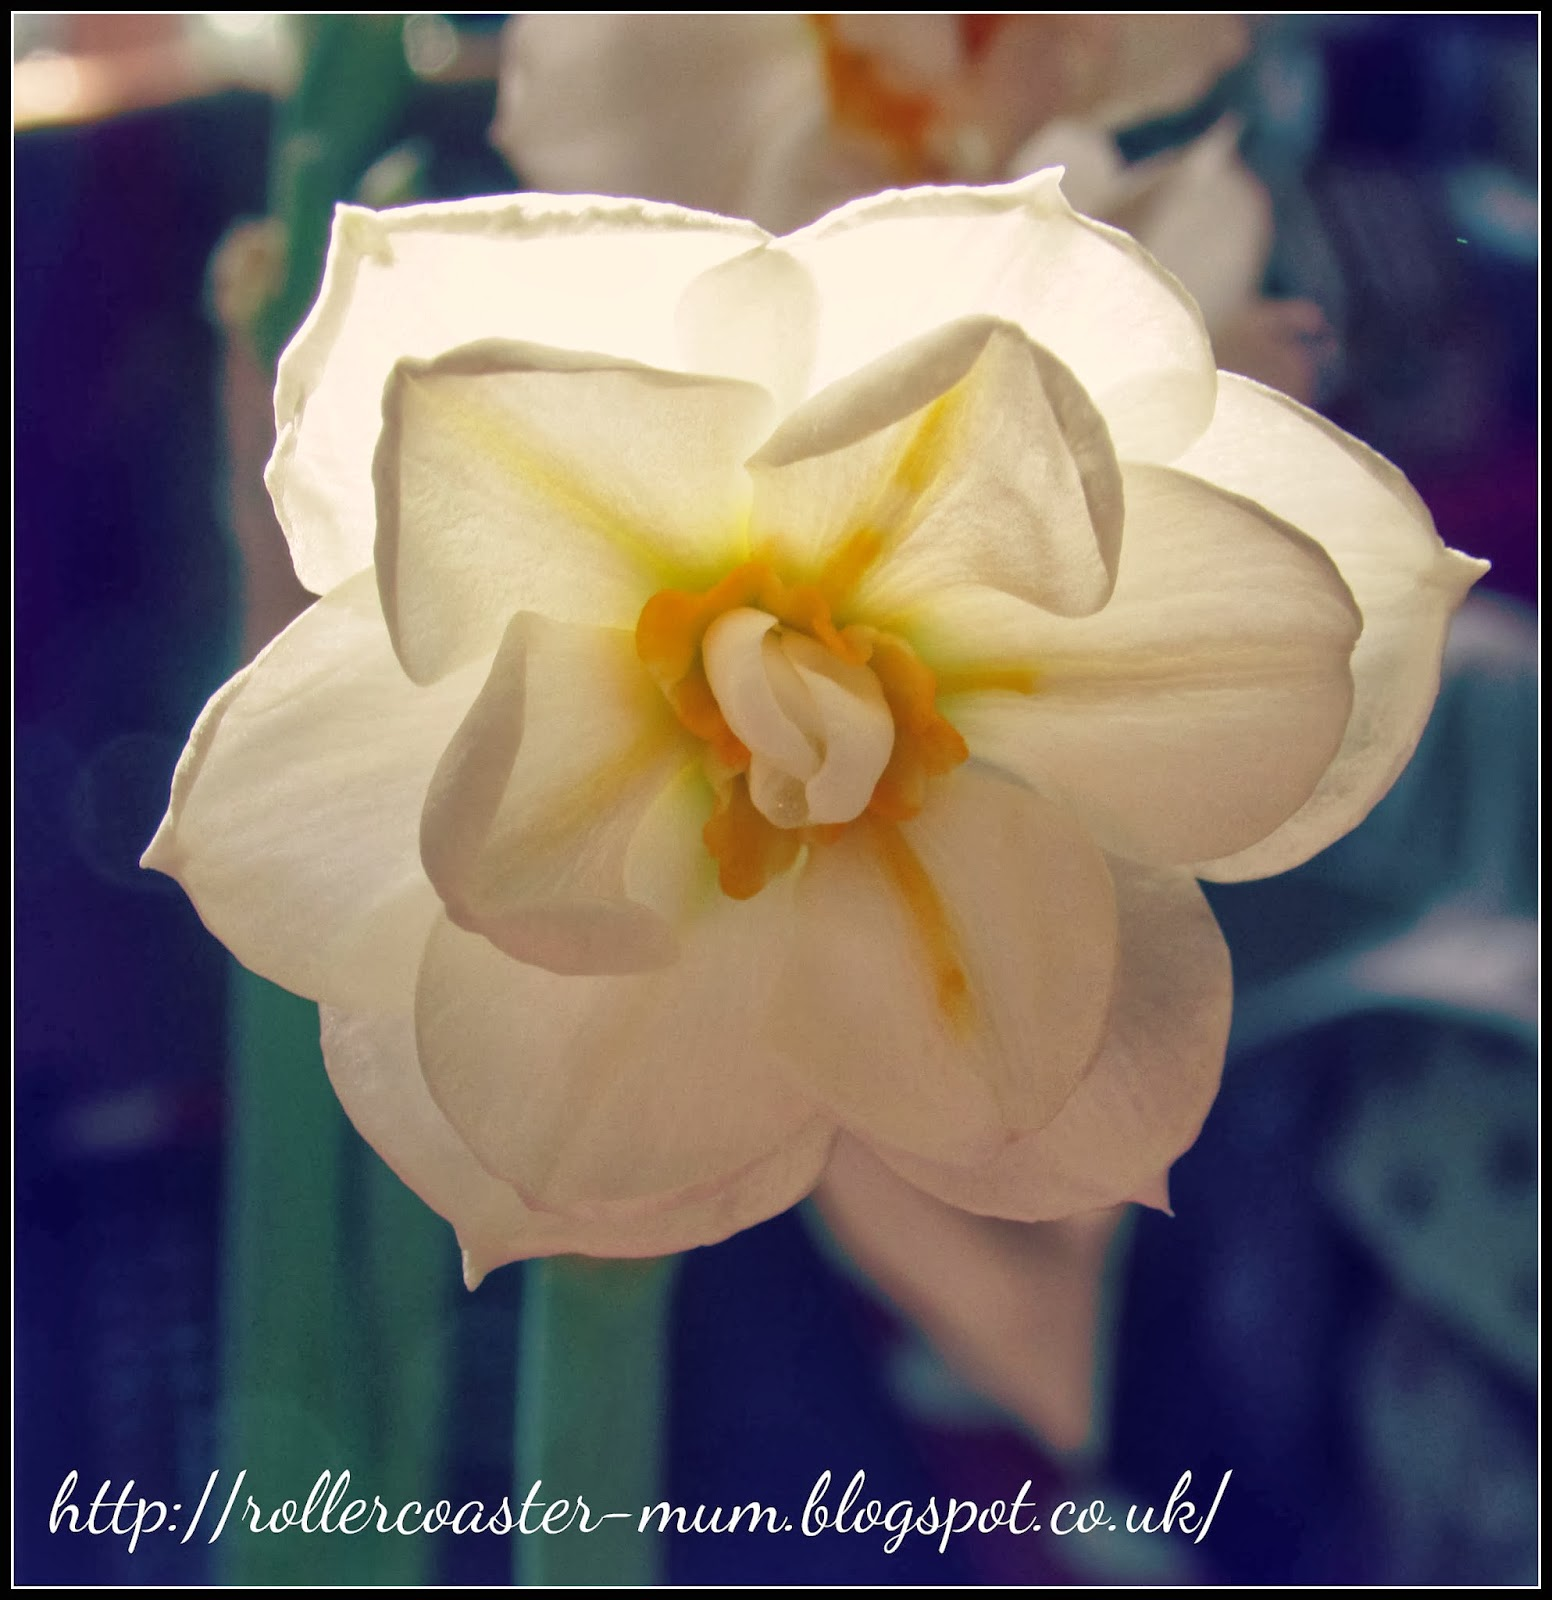 Christmas narcissus, daffodil flower